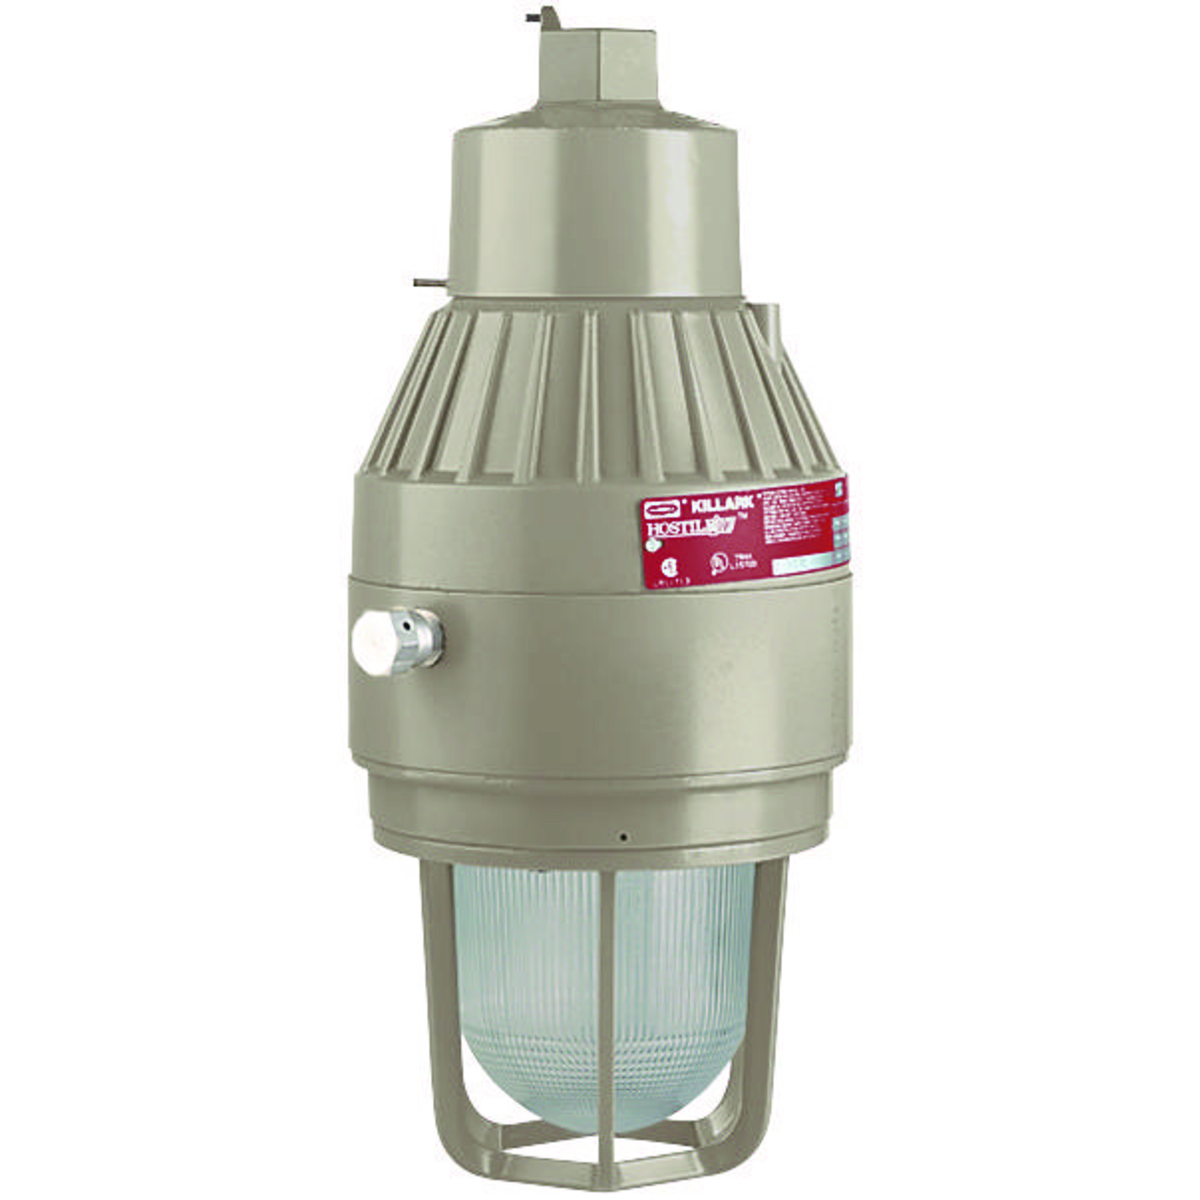 Killark Led High Bay: High Bay / Low Bay / Well Glass